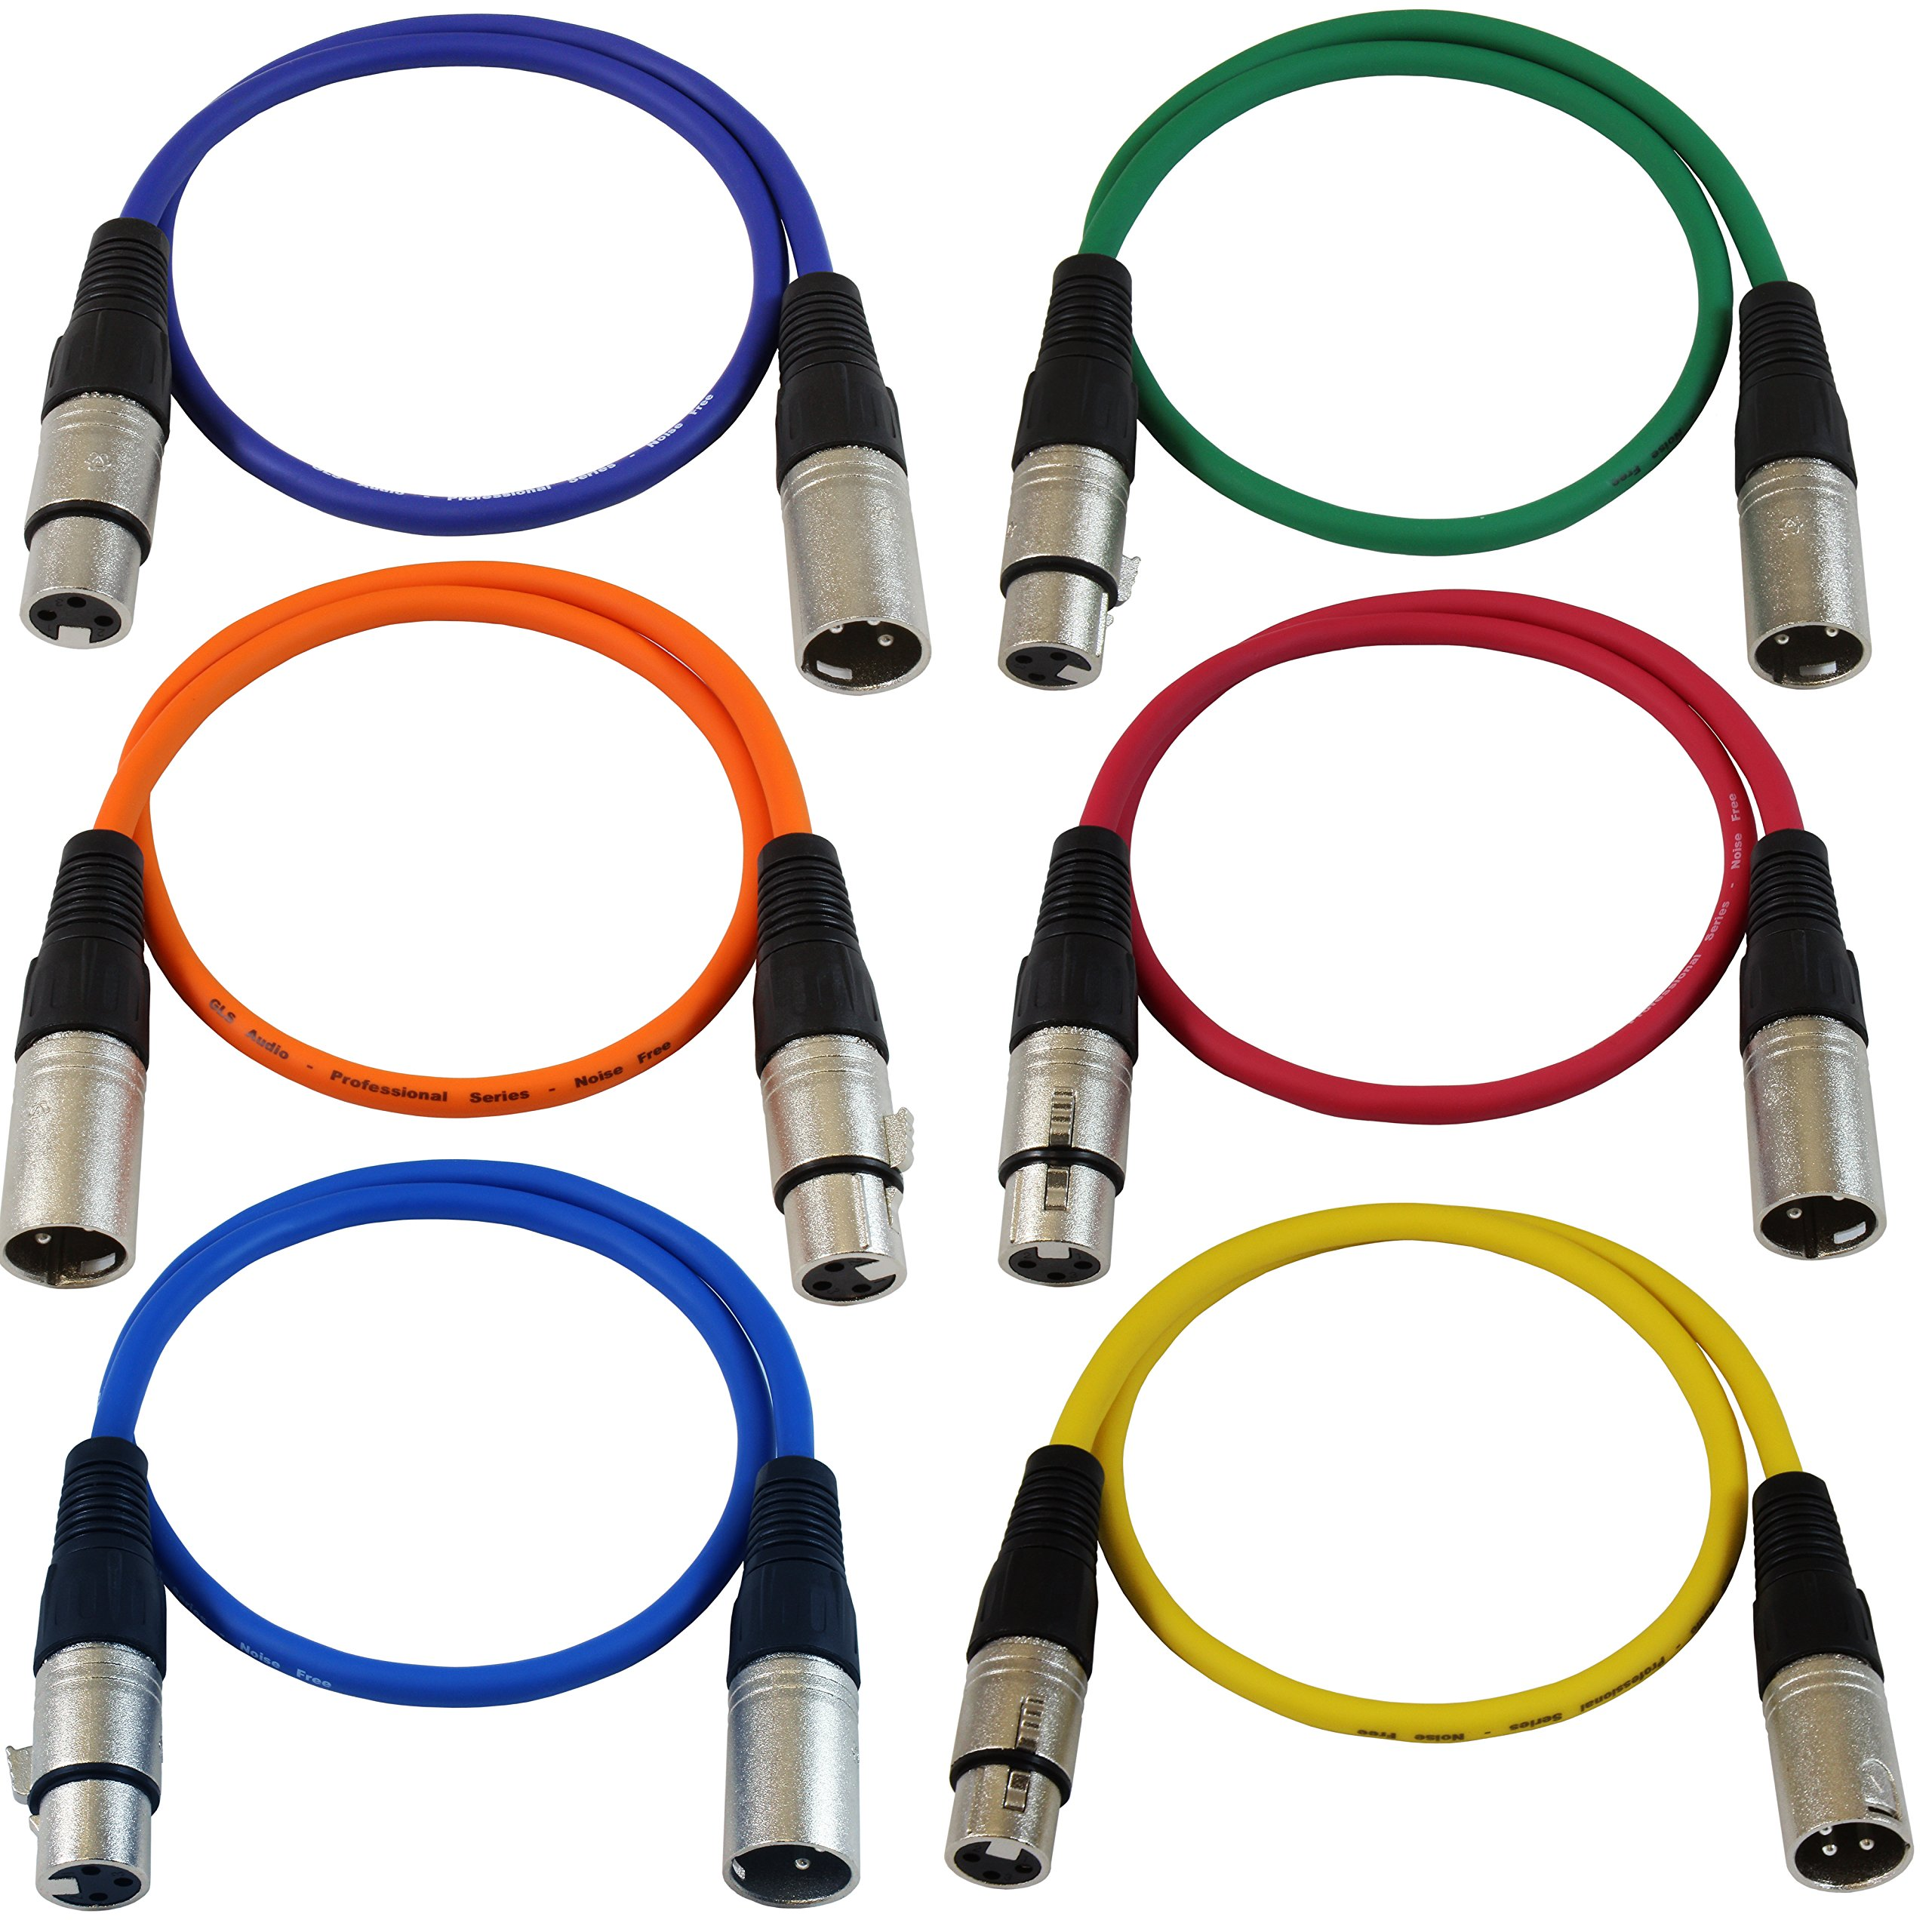 6 pack gls audio color 2ft balanced xlr patch cables colored cable cords ebay. Black Bedroom Furniture Sets. Home Design Ideas